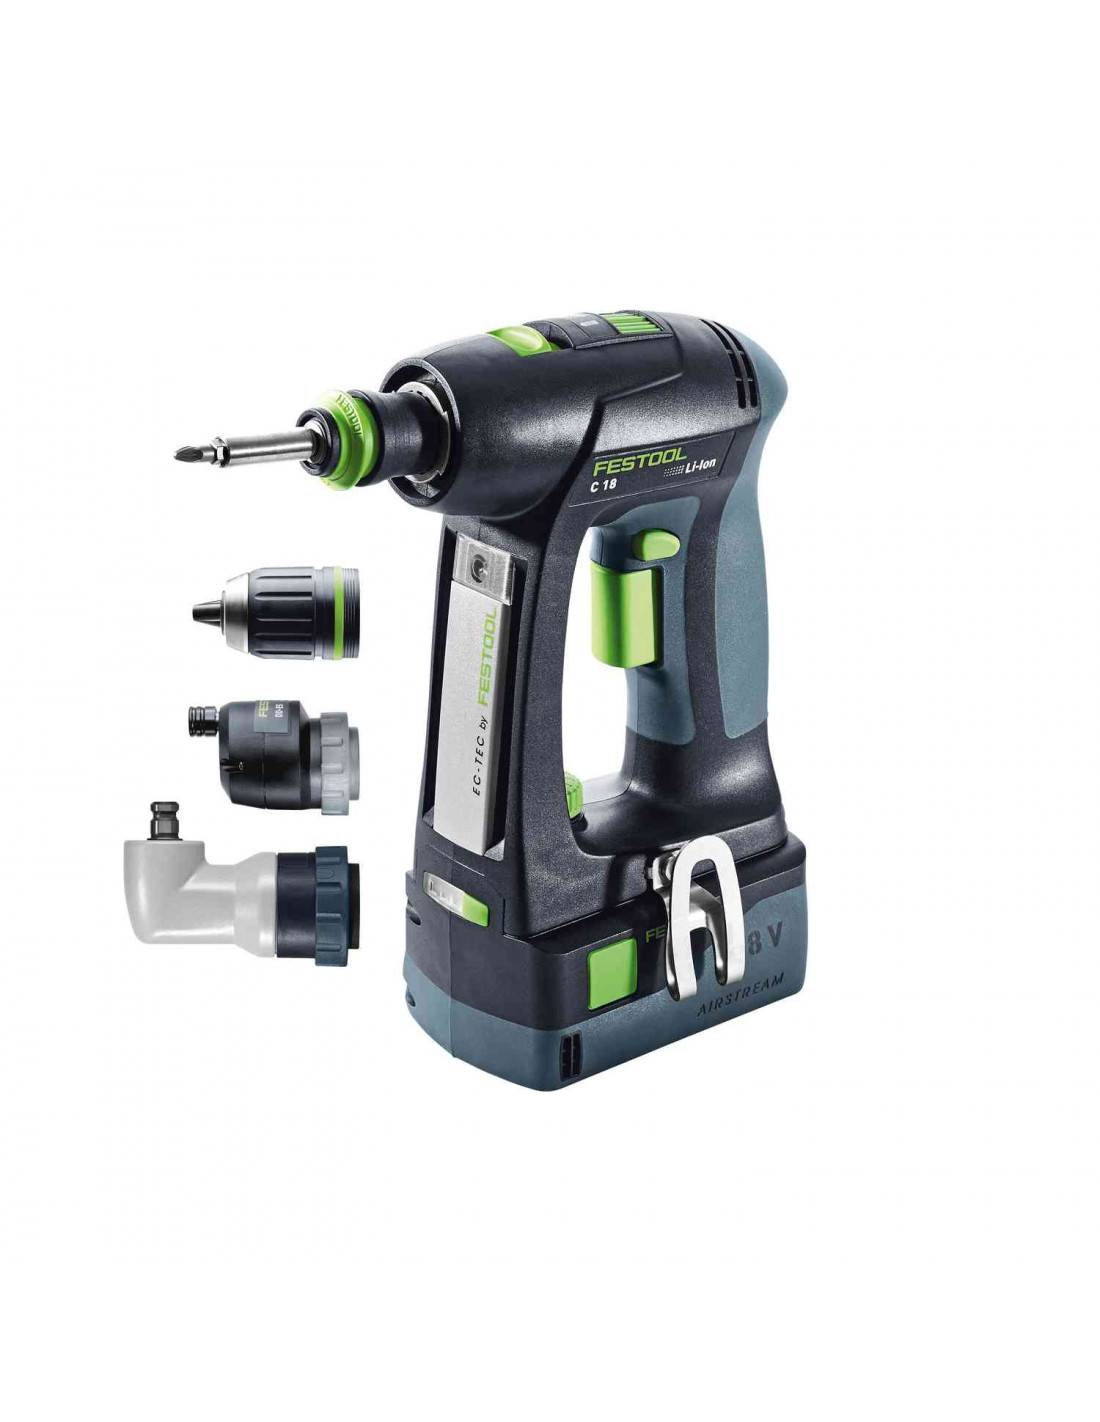 FESTOOL - Perceuse visseuse C18 LI 2X5.2Ah SET - 574739